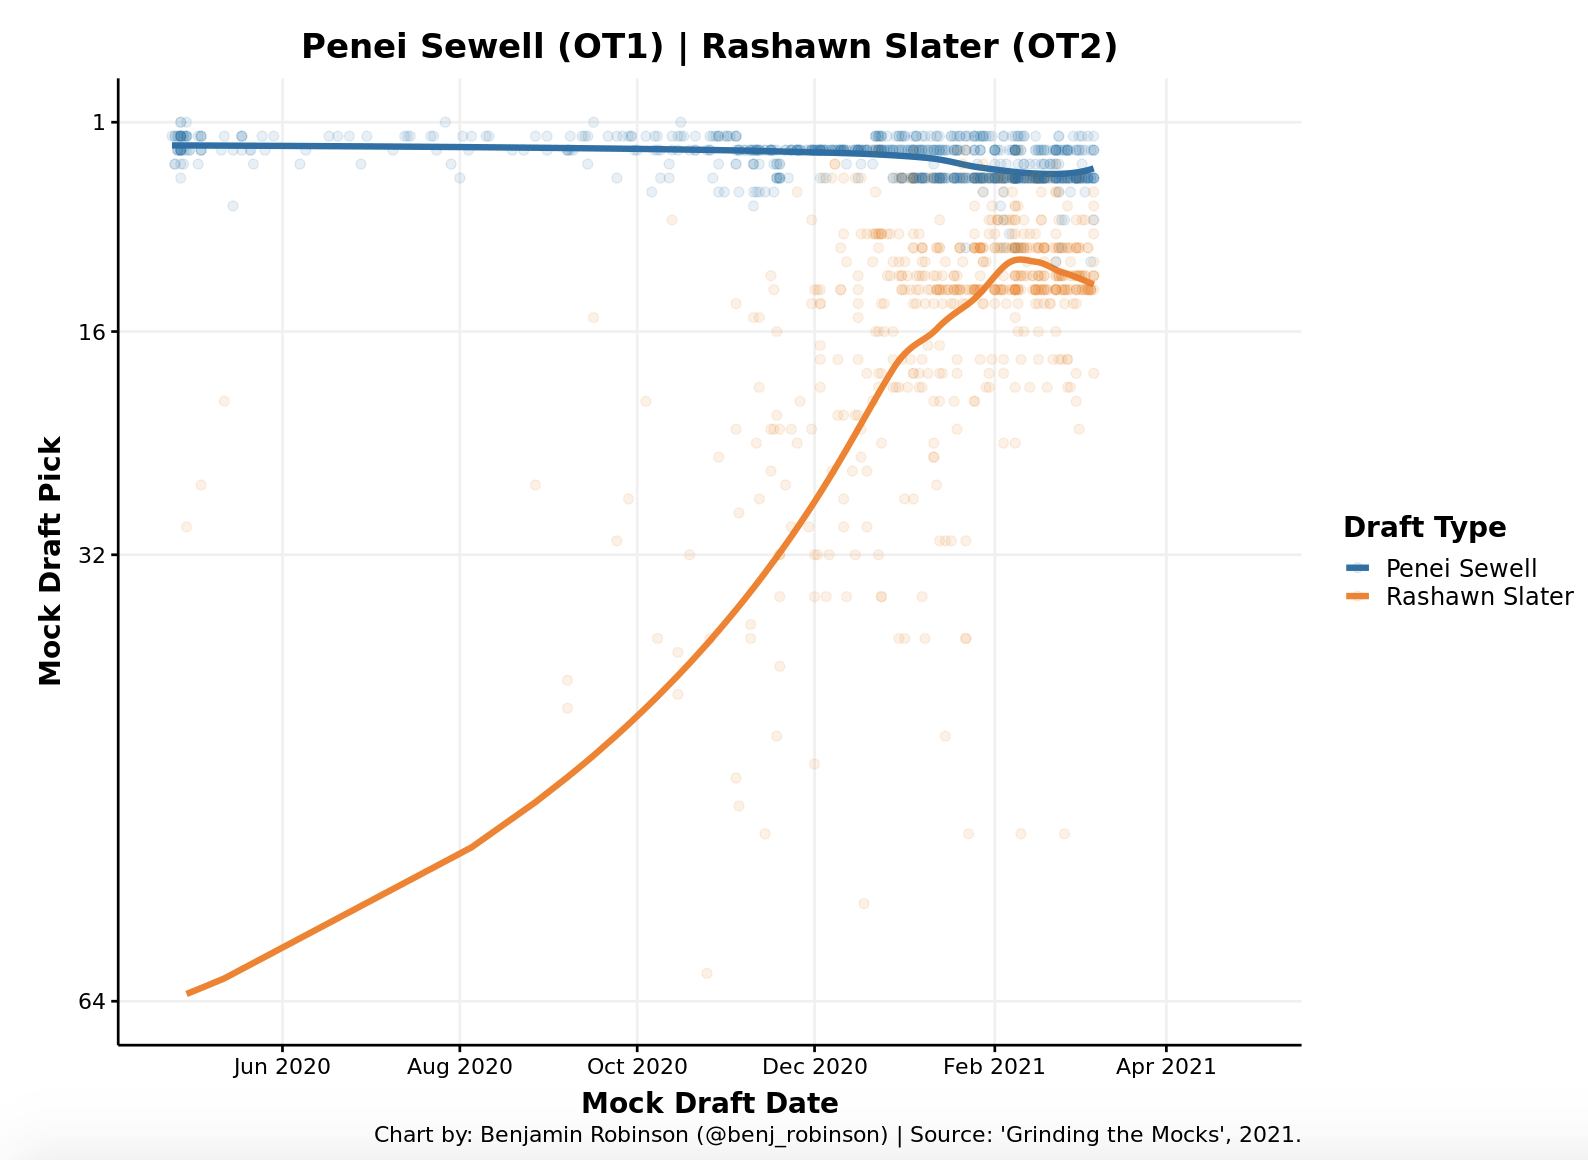 Penei Sewell and Rashawn Slater Draft Stock Charts at Grinding the Mocks